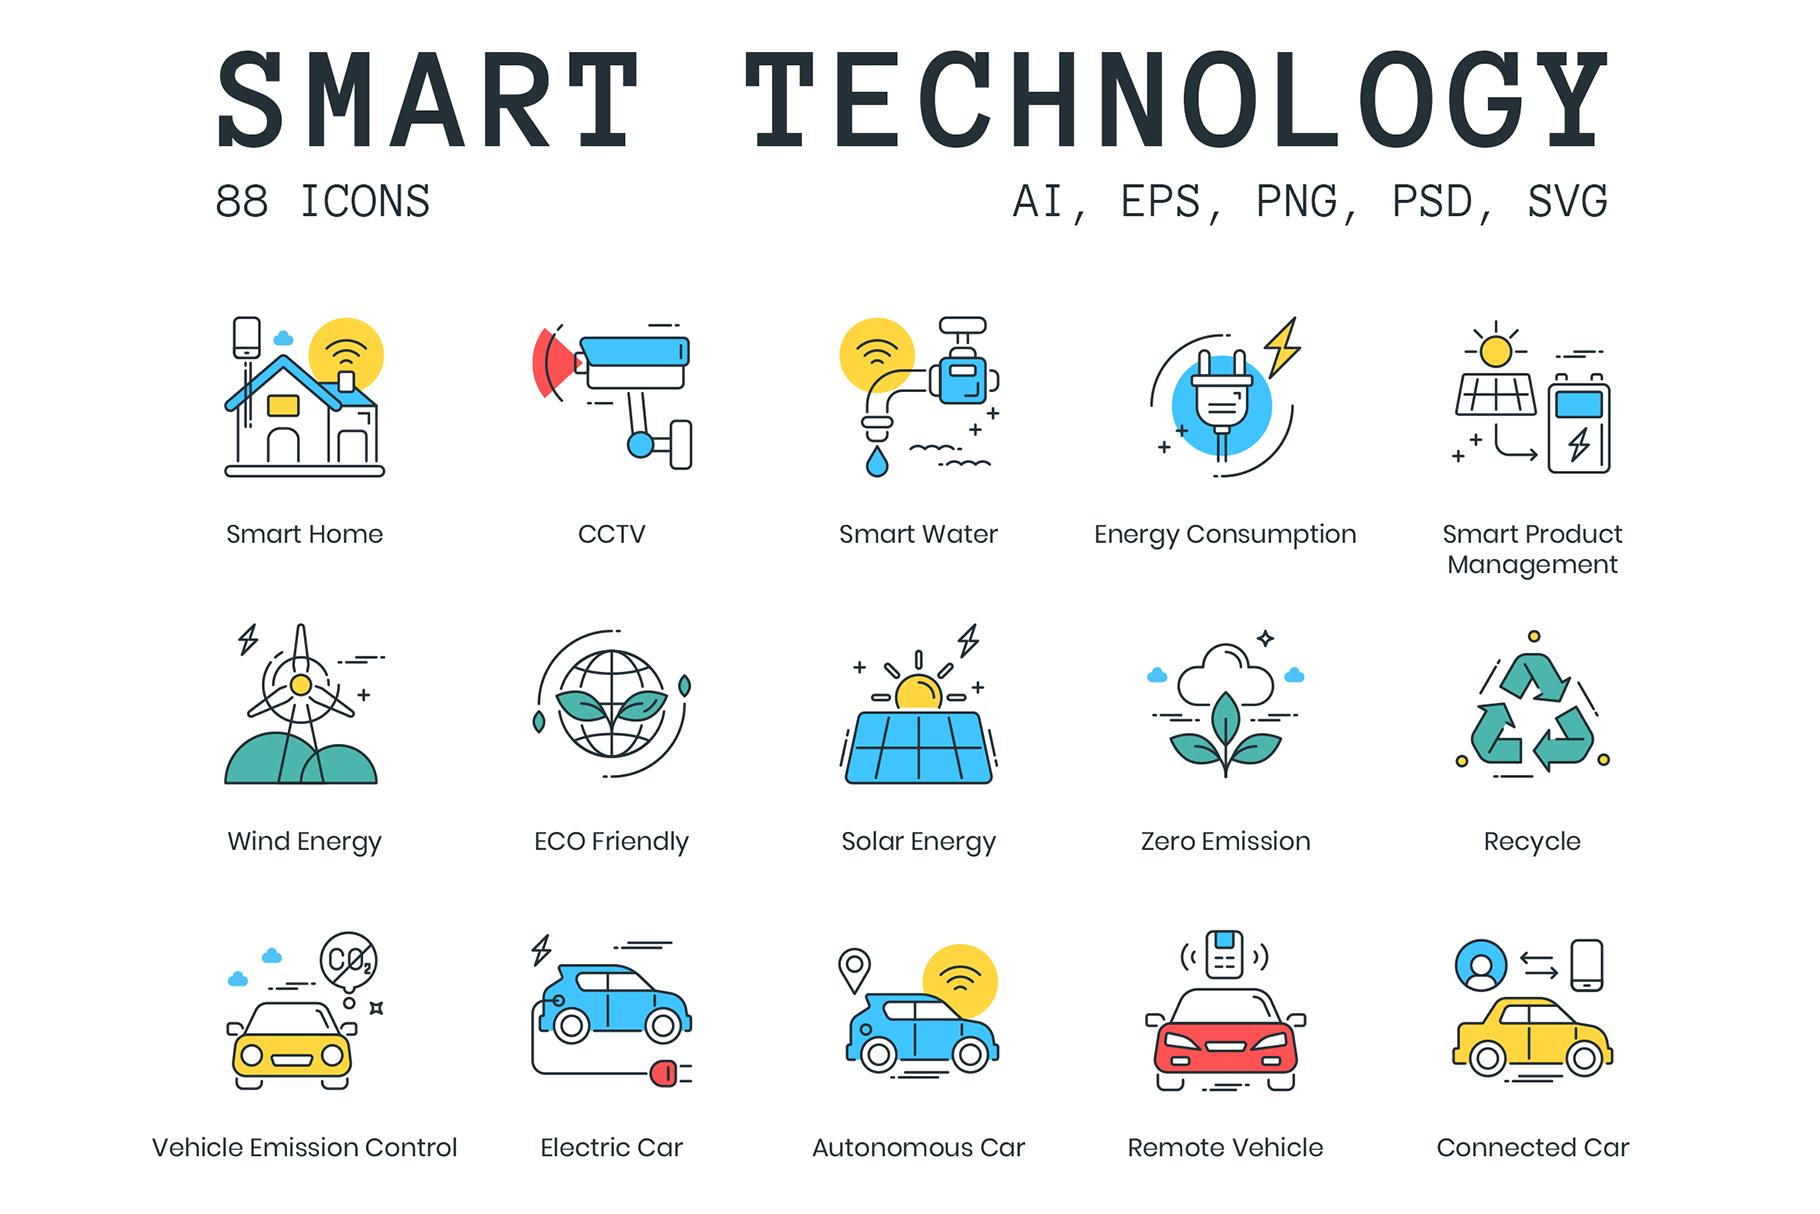 88 Smart Technology Icons Design Cuts